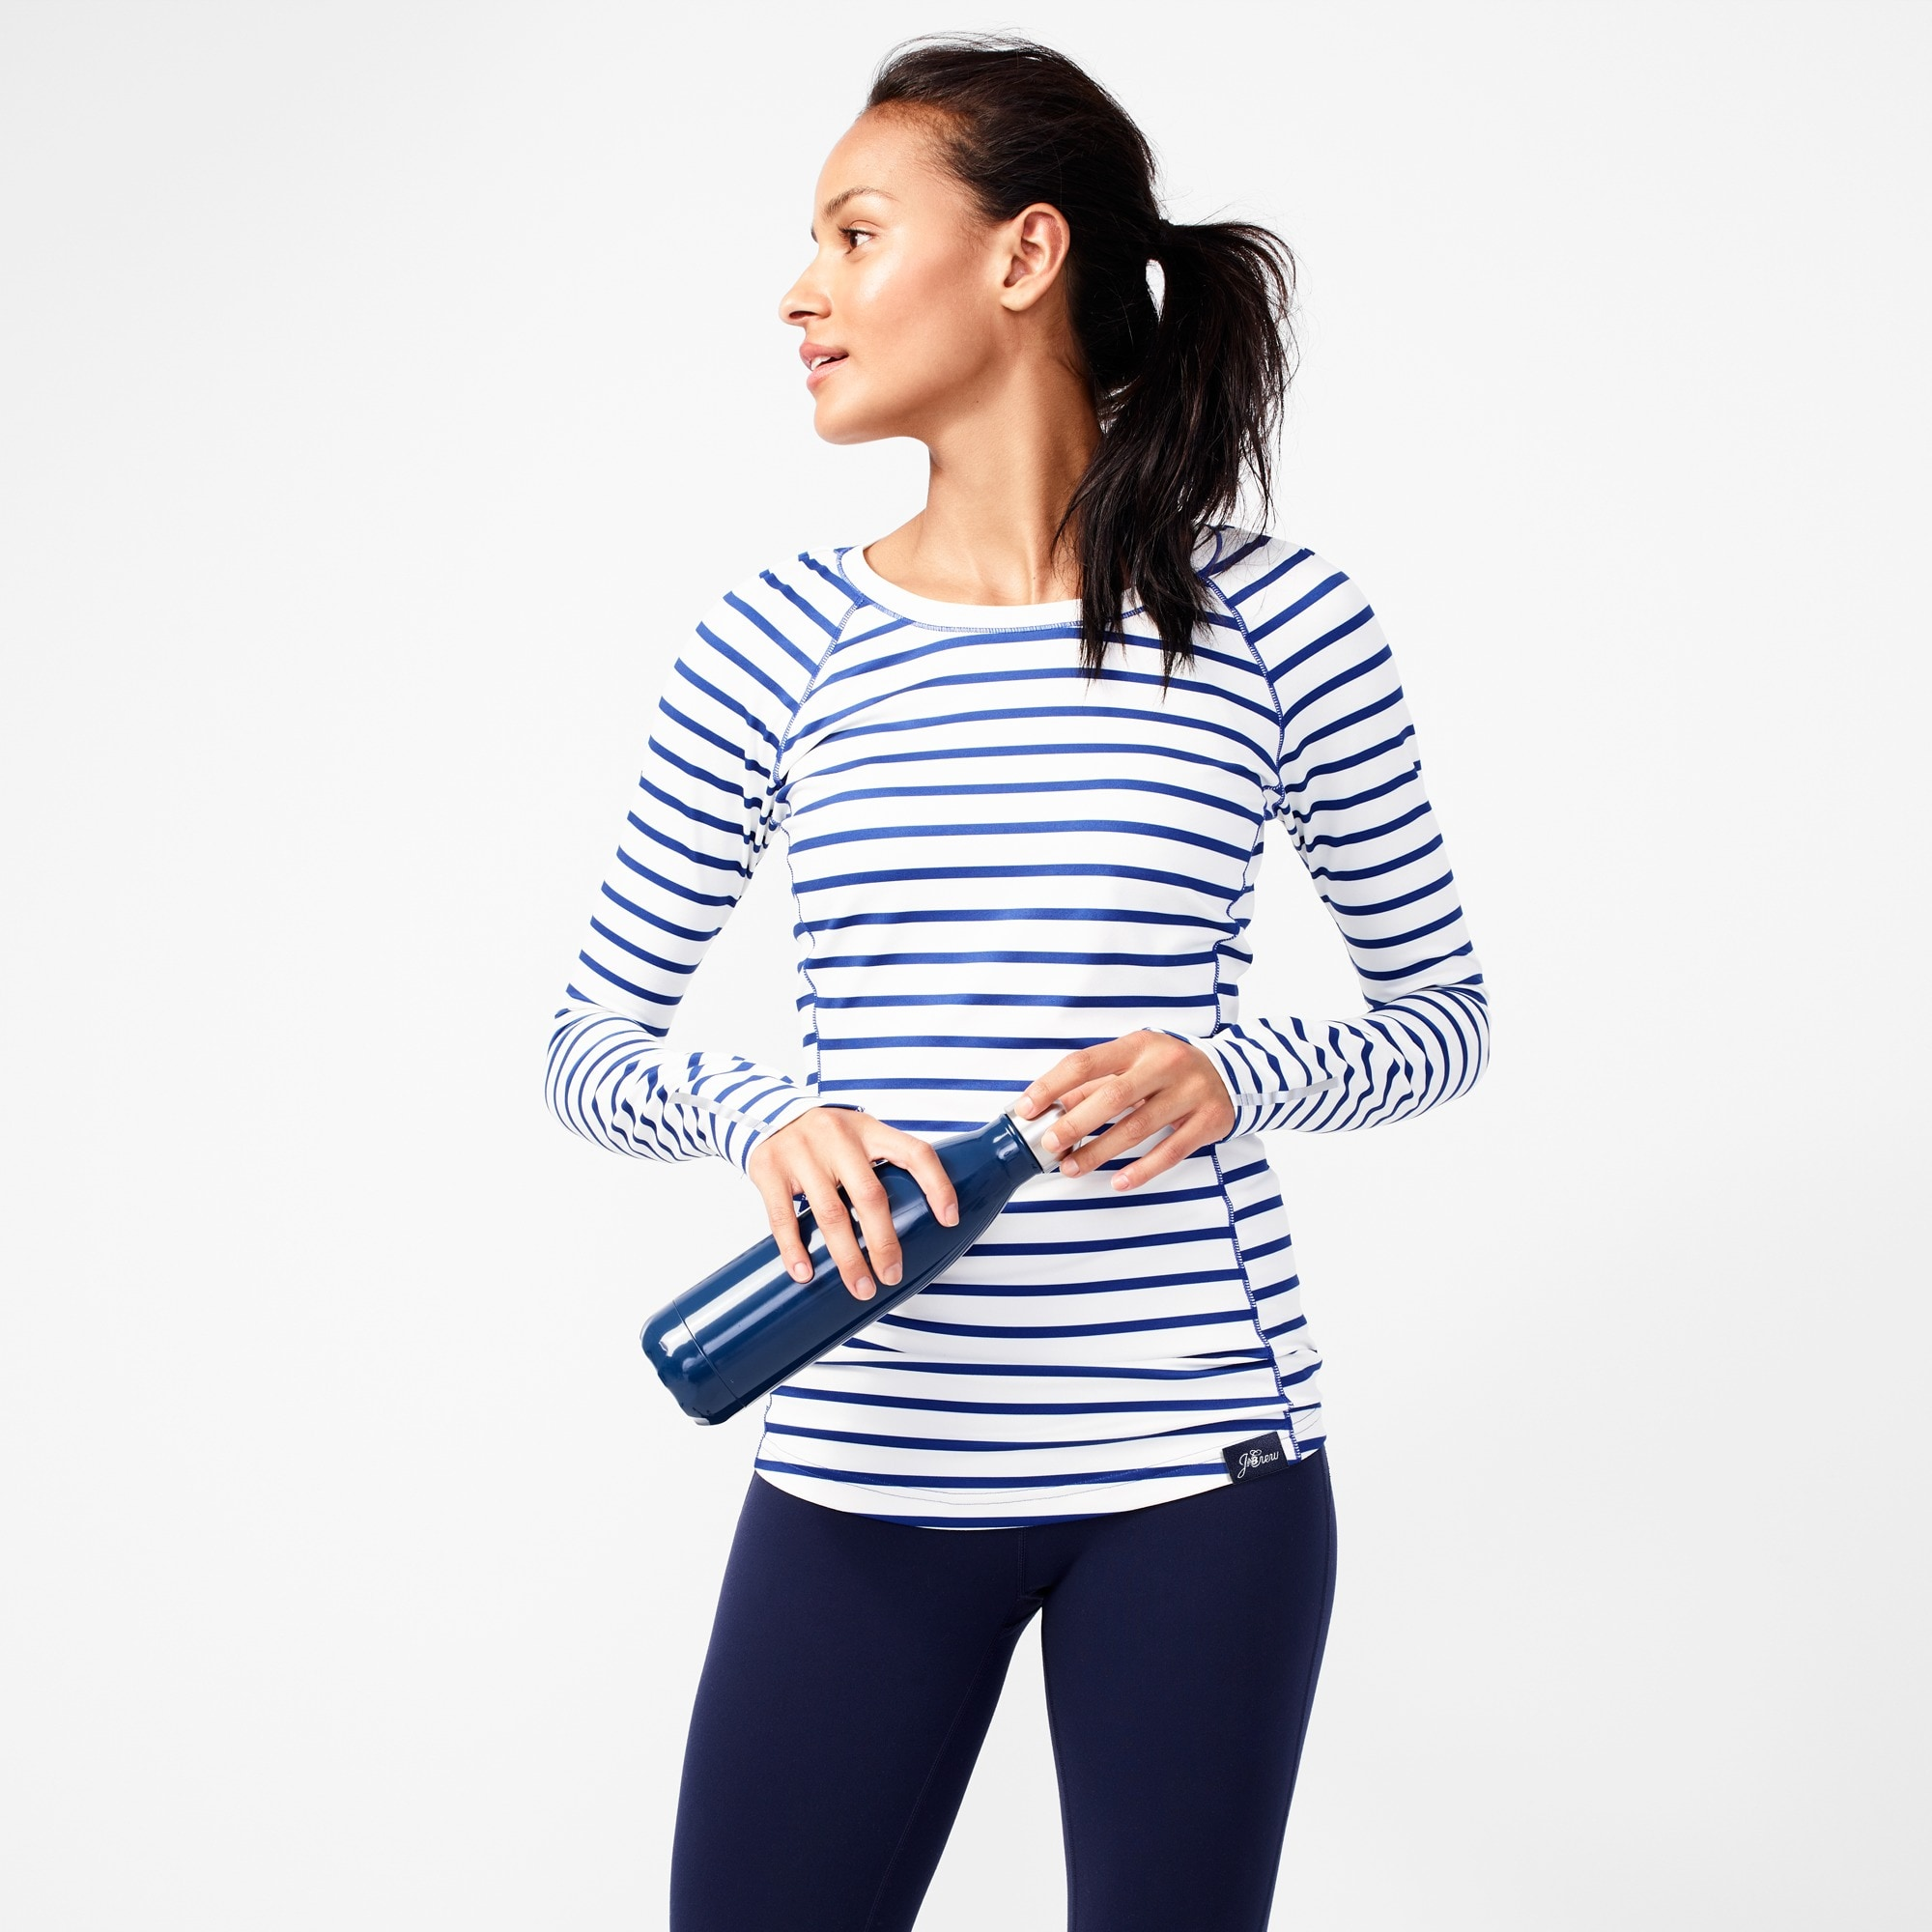 New Balance® for J.Crew in-transit long-sleeve T-shirt in stripe